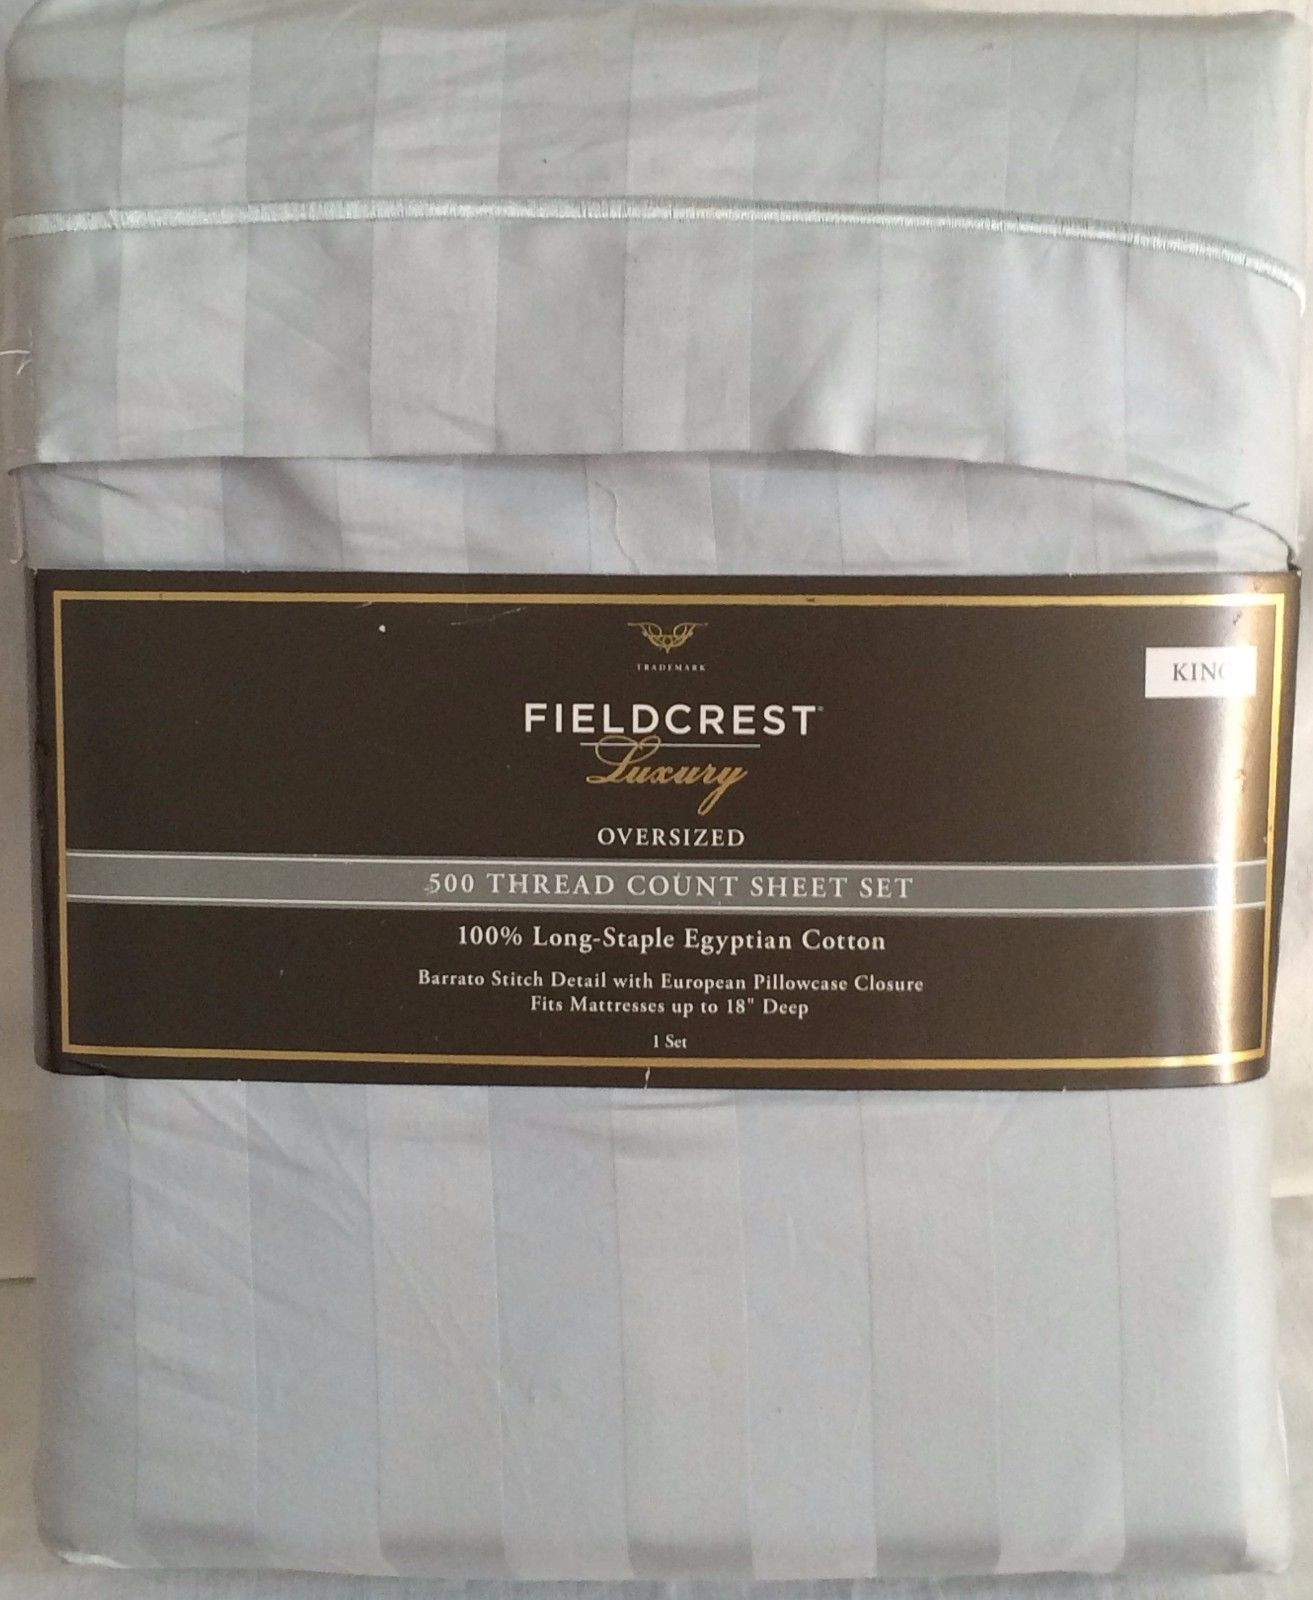 Organic Bamboo Sheets Target | Fieldcrest Cannon Sheets | Fieldcrest Luxury Sheets